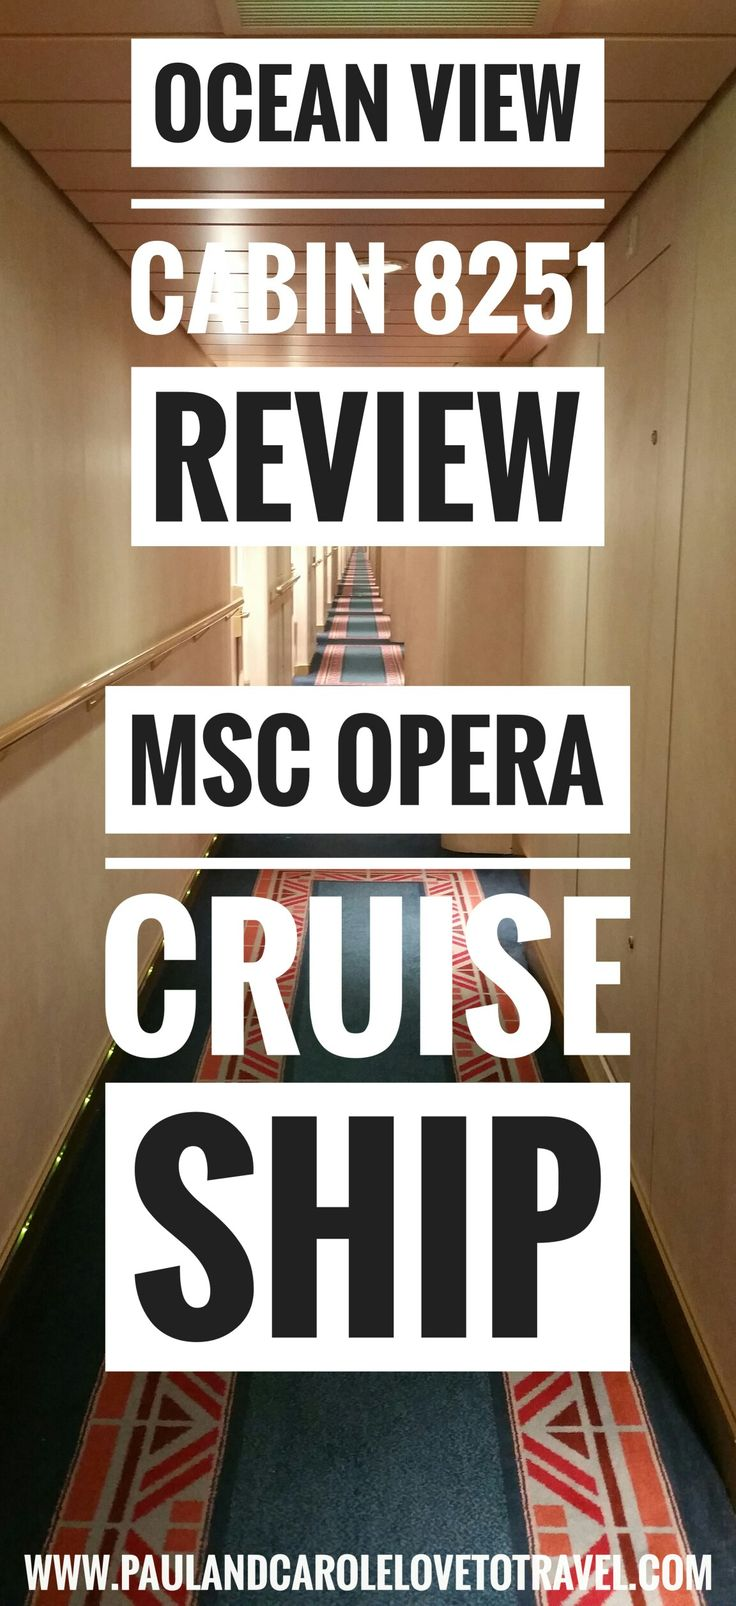 We spent 2 weeks on the MSC Opera and stayed in Ocean View Cabin 8251. Here is a look around so you know what to expect if you are planning a cruise with MSC.